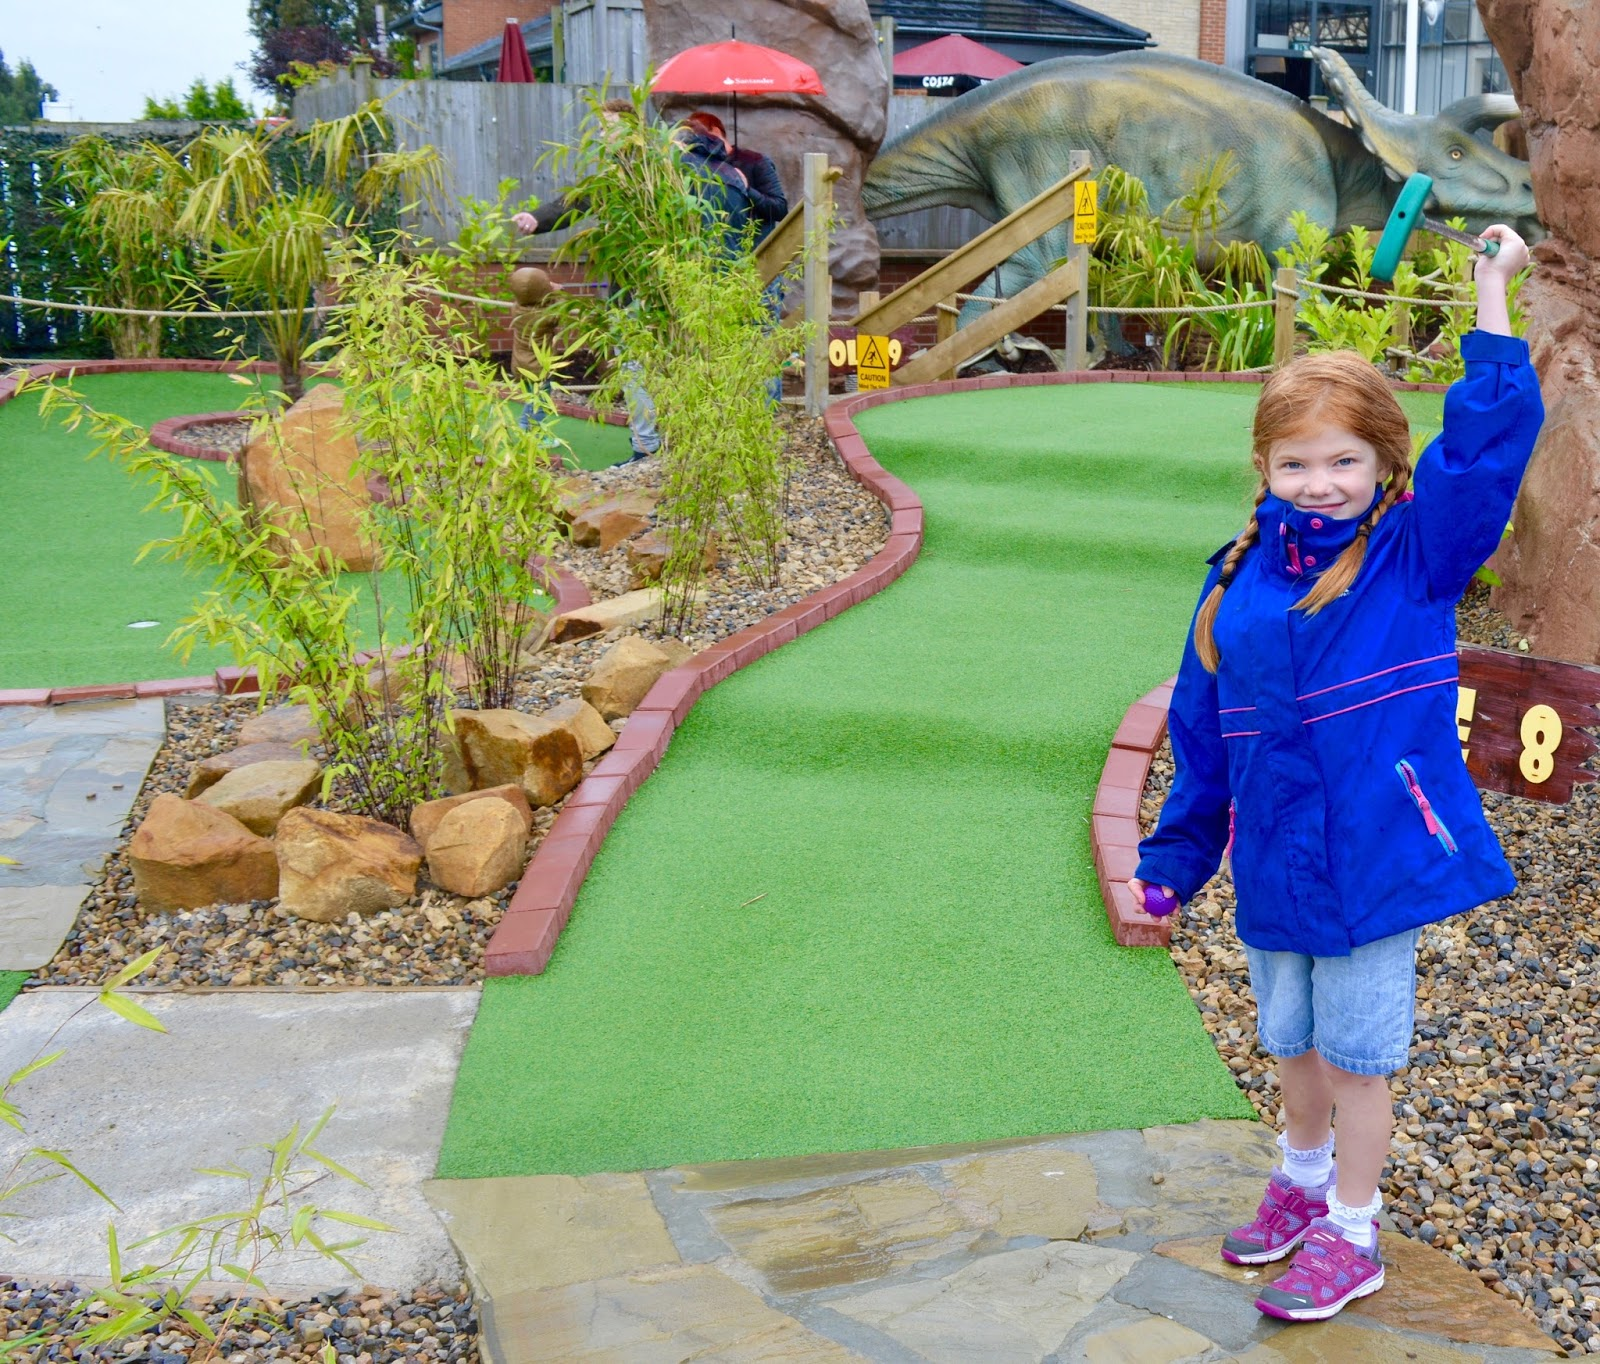 Jurassic Dinosaur Crazy Golf at Heighley Gate Garden Centre near Morpeth